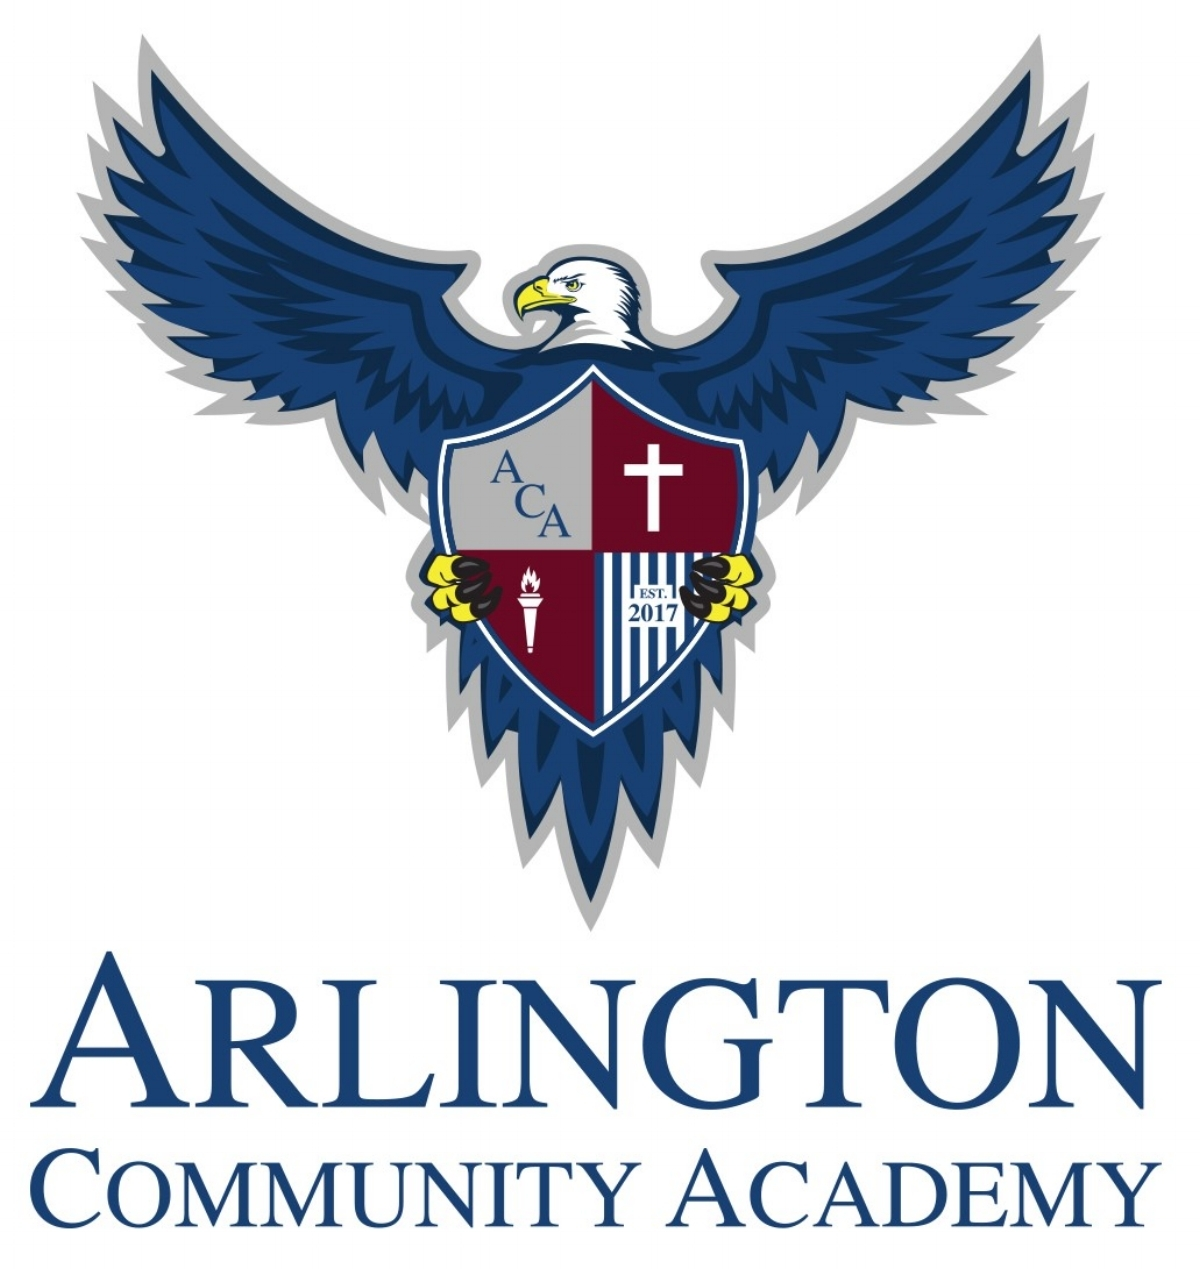 Arlington Community Academy